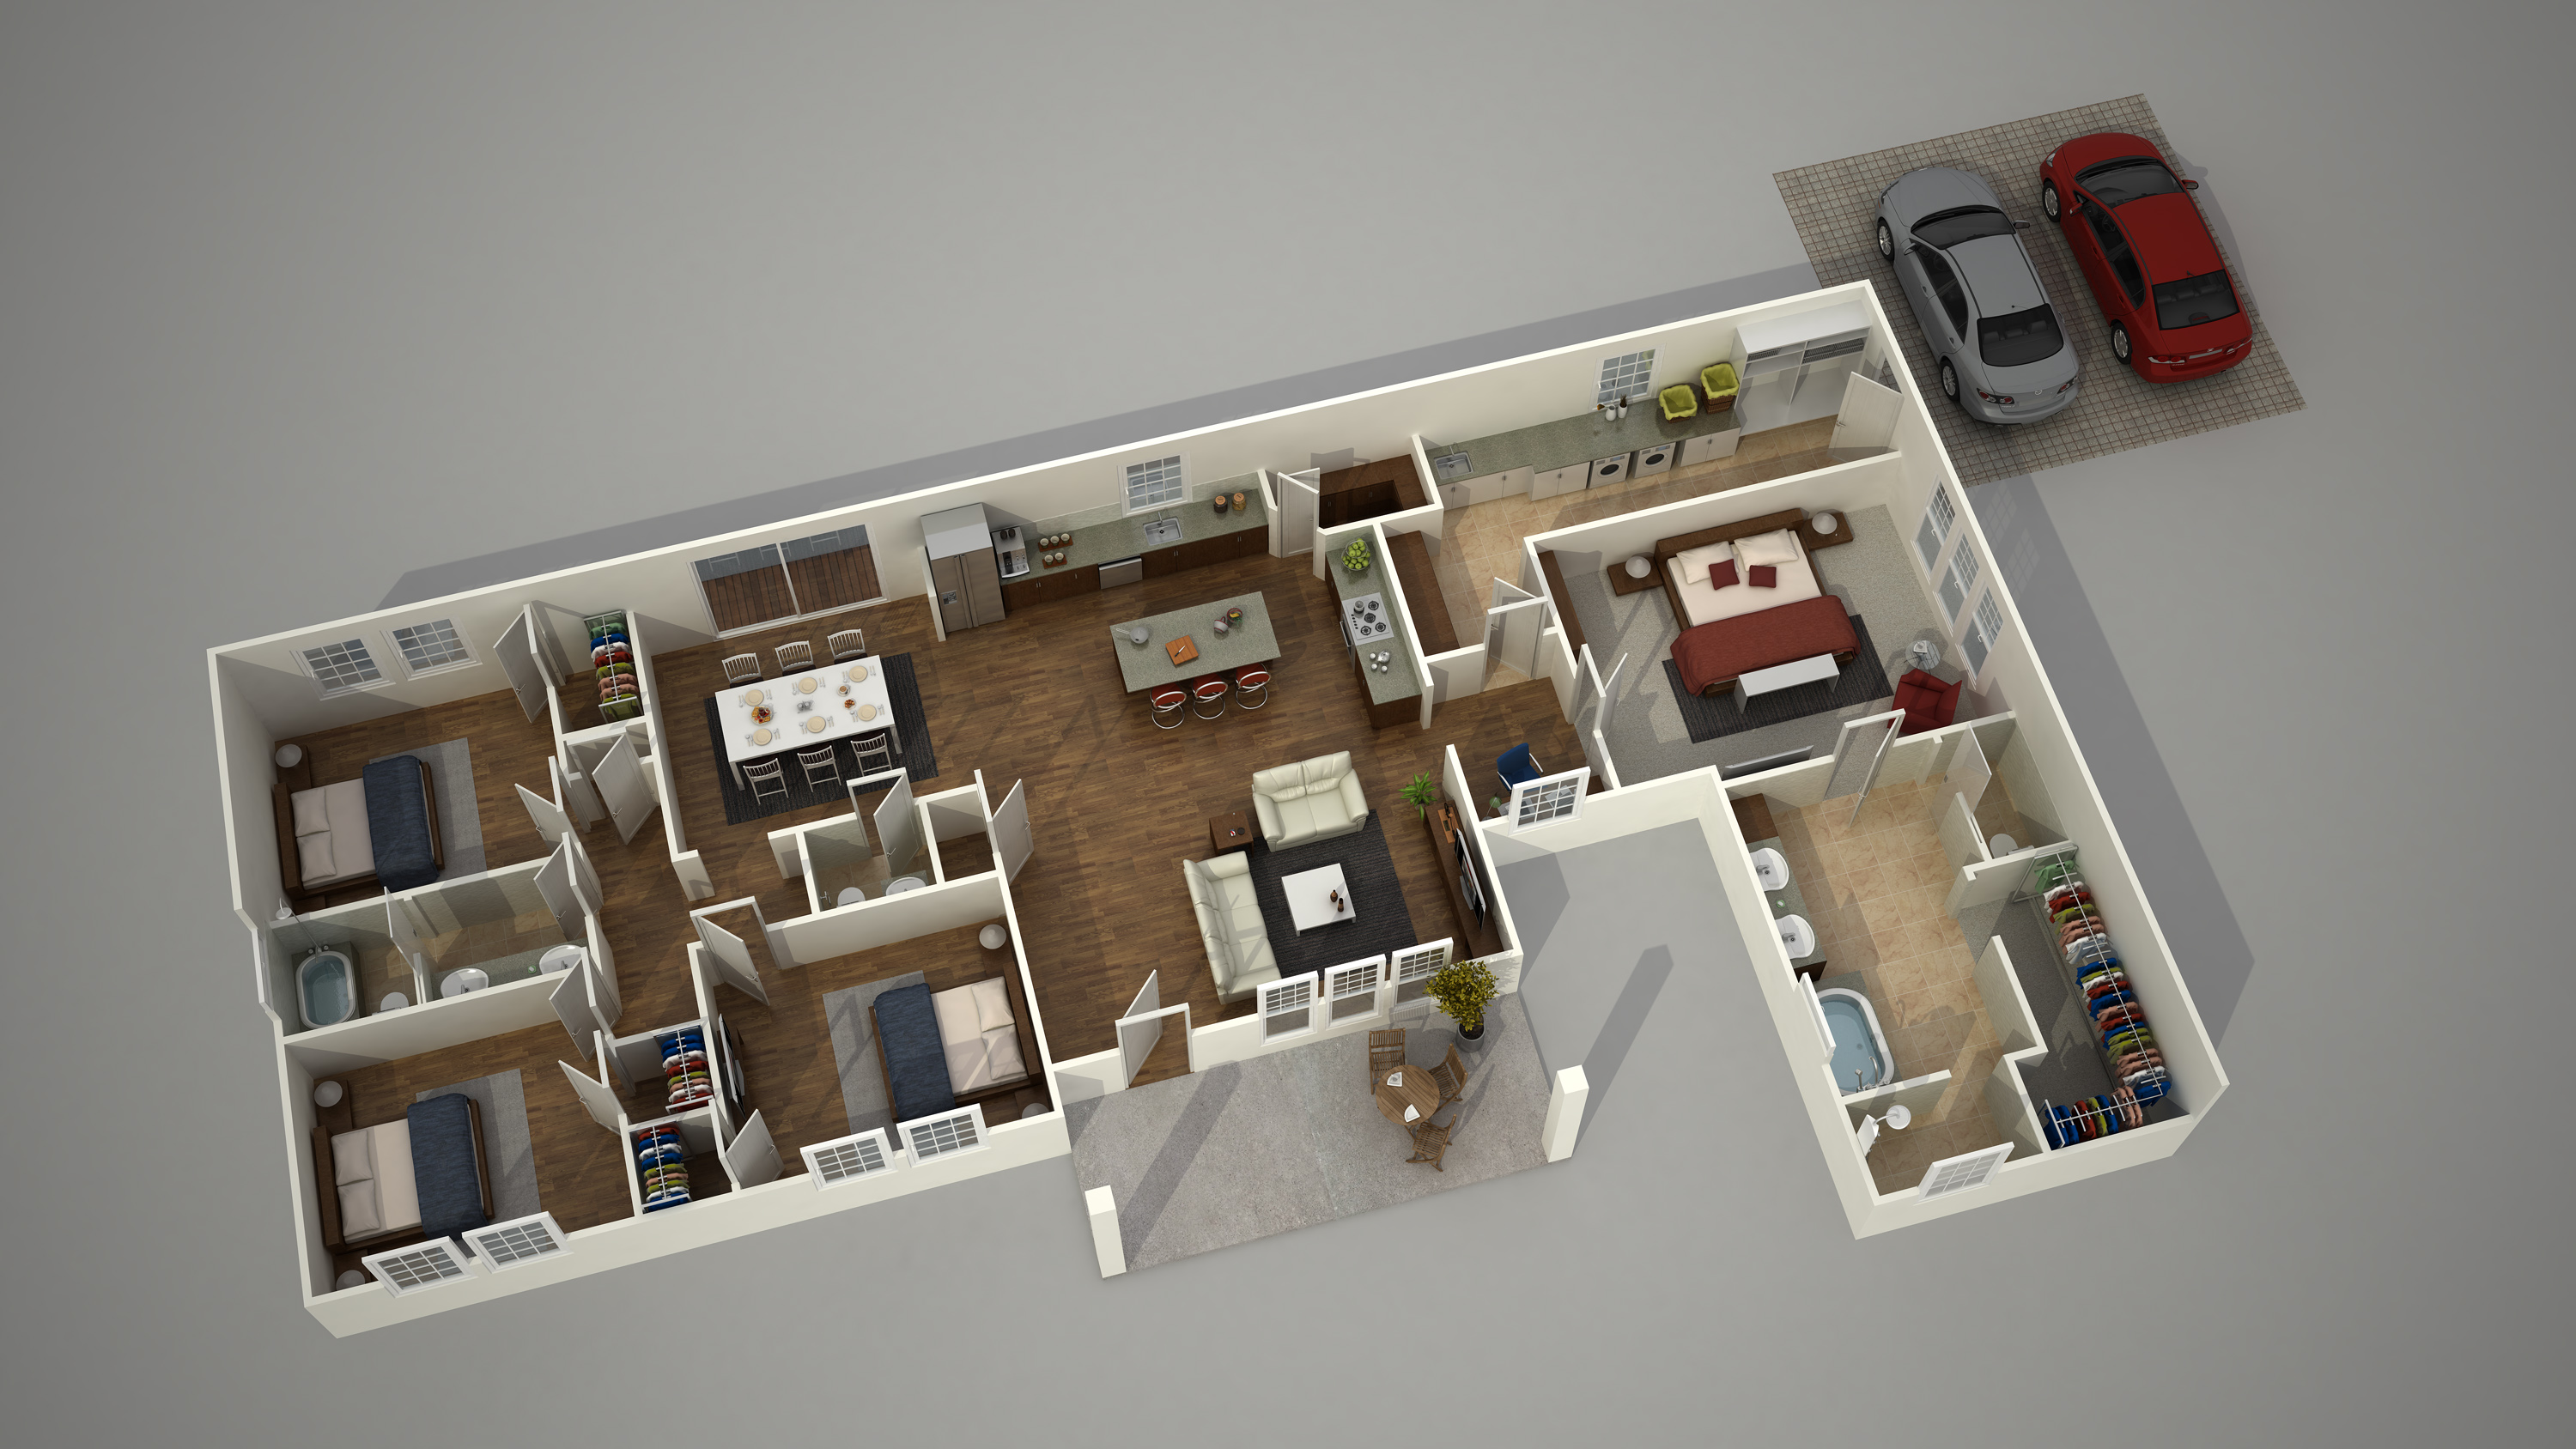 How to create a 3d architecture floor plan rendering 3d architectural floor plans